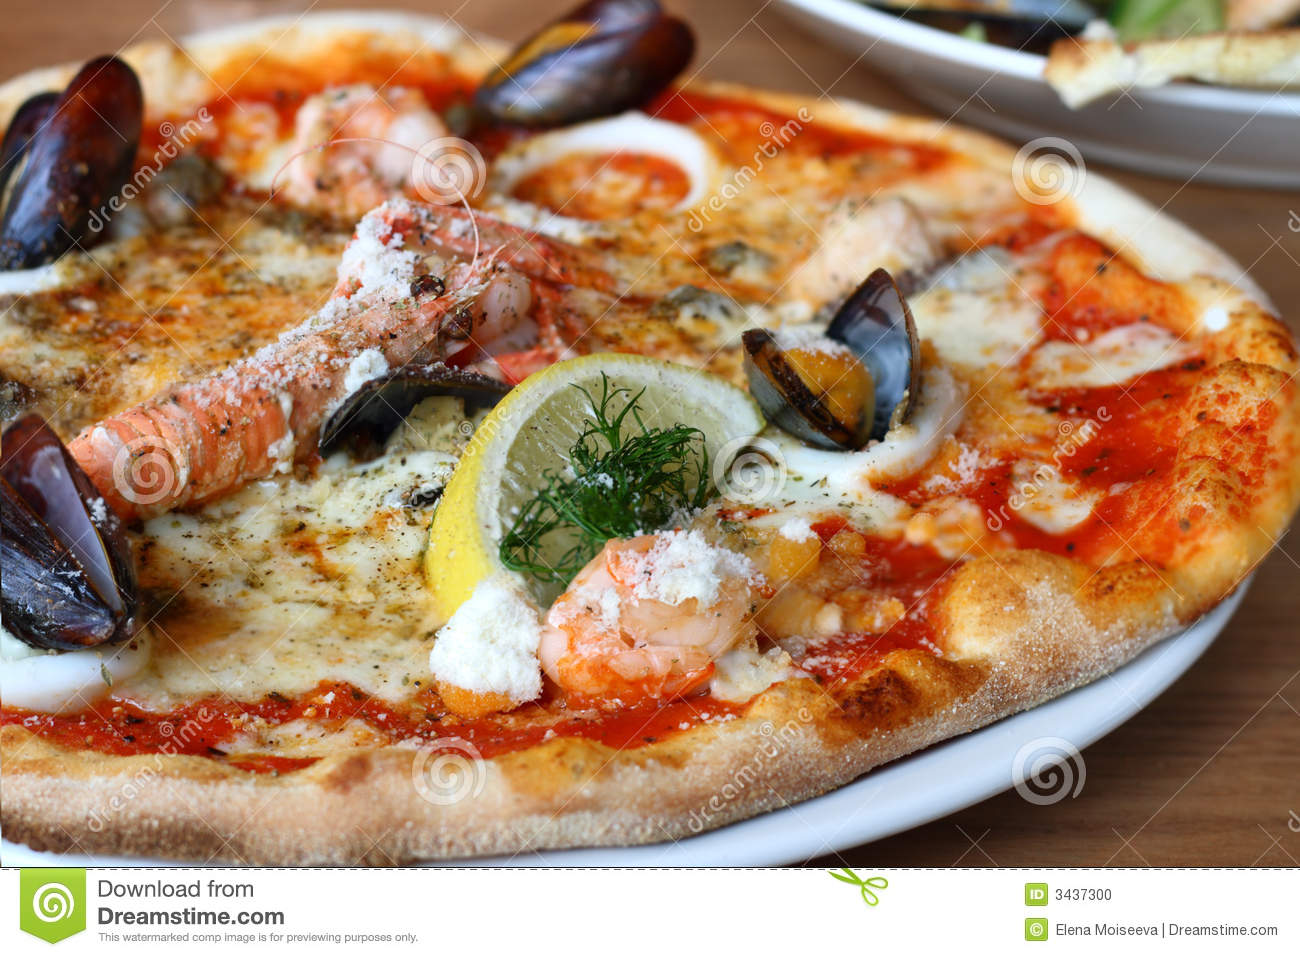 Seafood Pizza Lobster Mussels Stock Photo - Image: 3437300